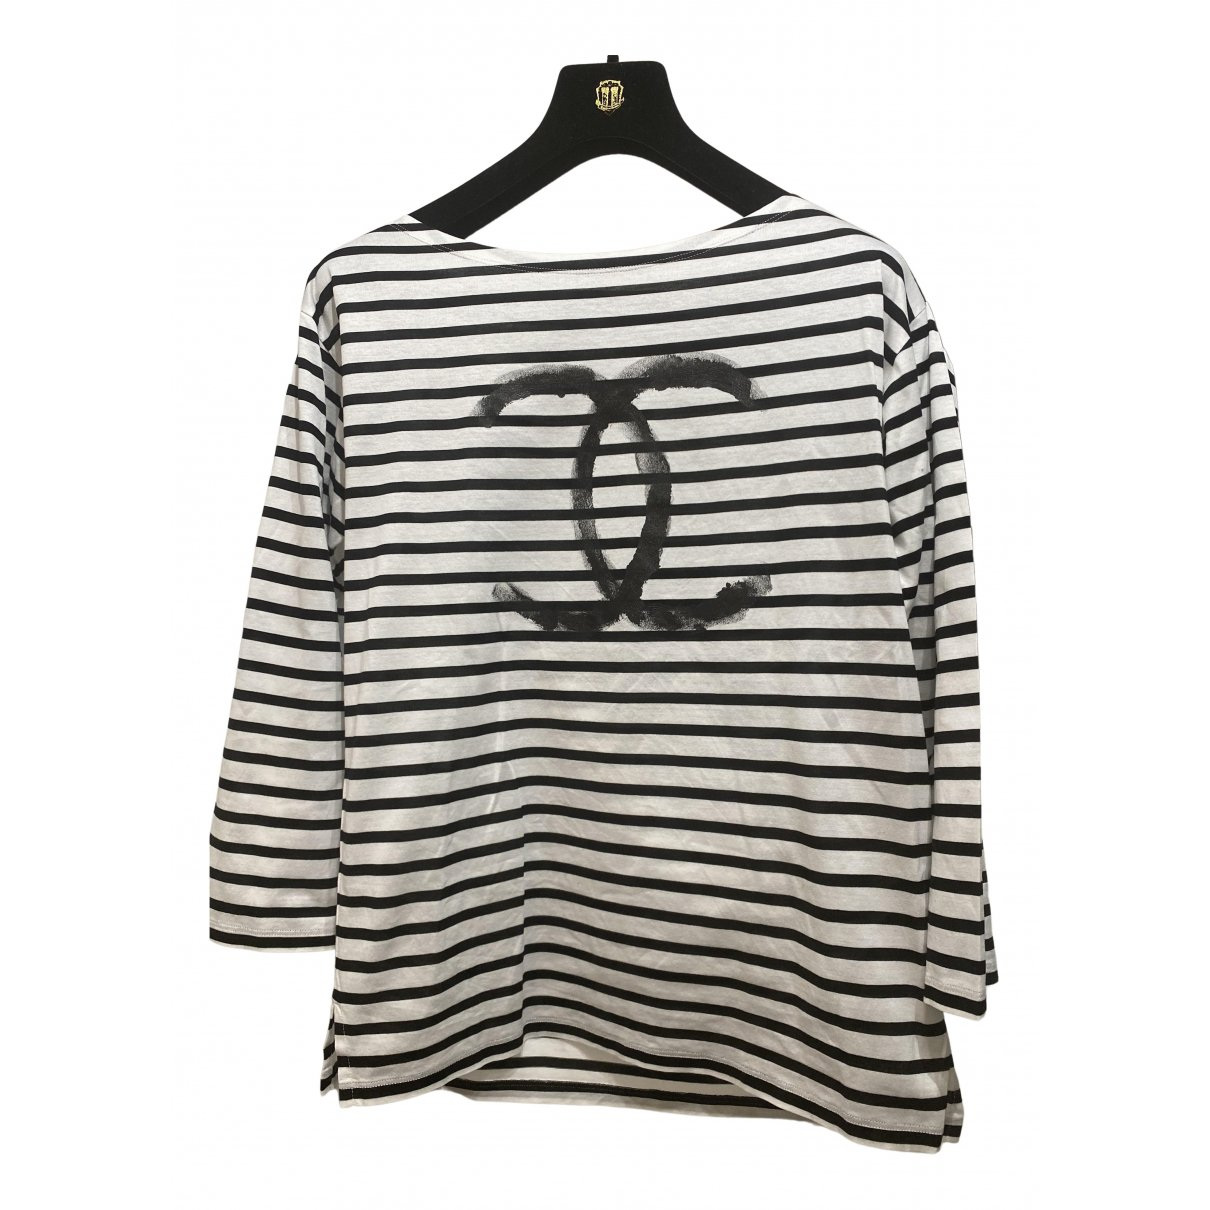 Chanel N Navy Cotton Top for Women